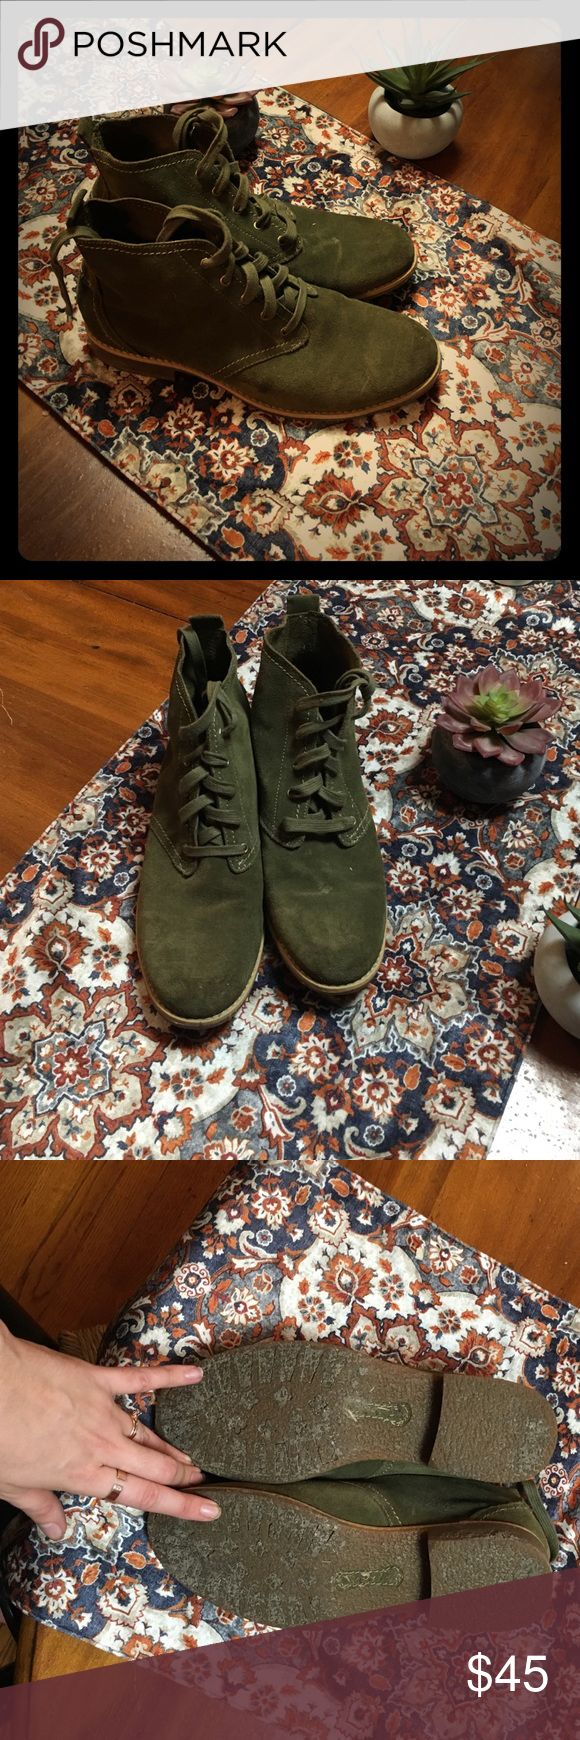 Suede Timberland EarthKeepers Army green. Worn Once Timberland Shoes Ankle Boots & Booties